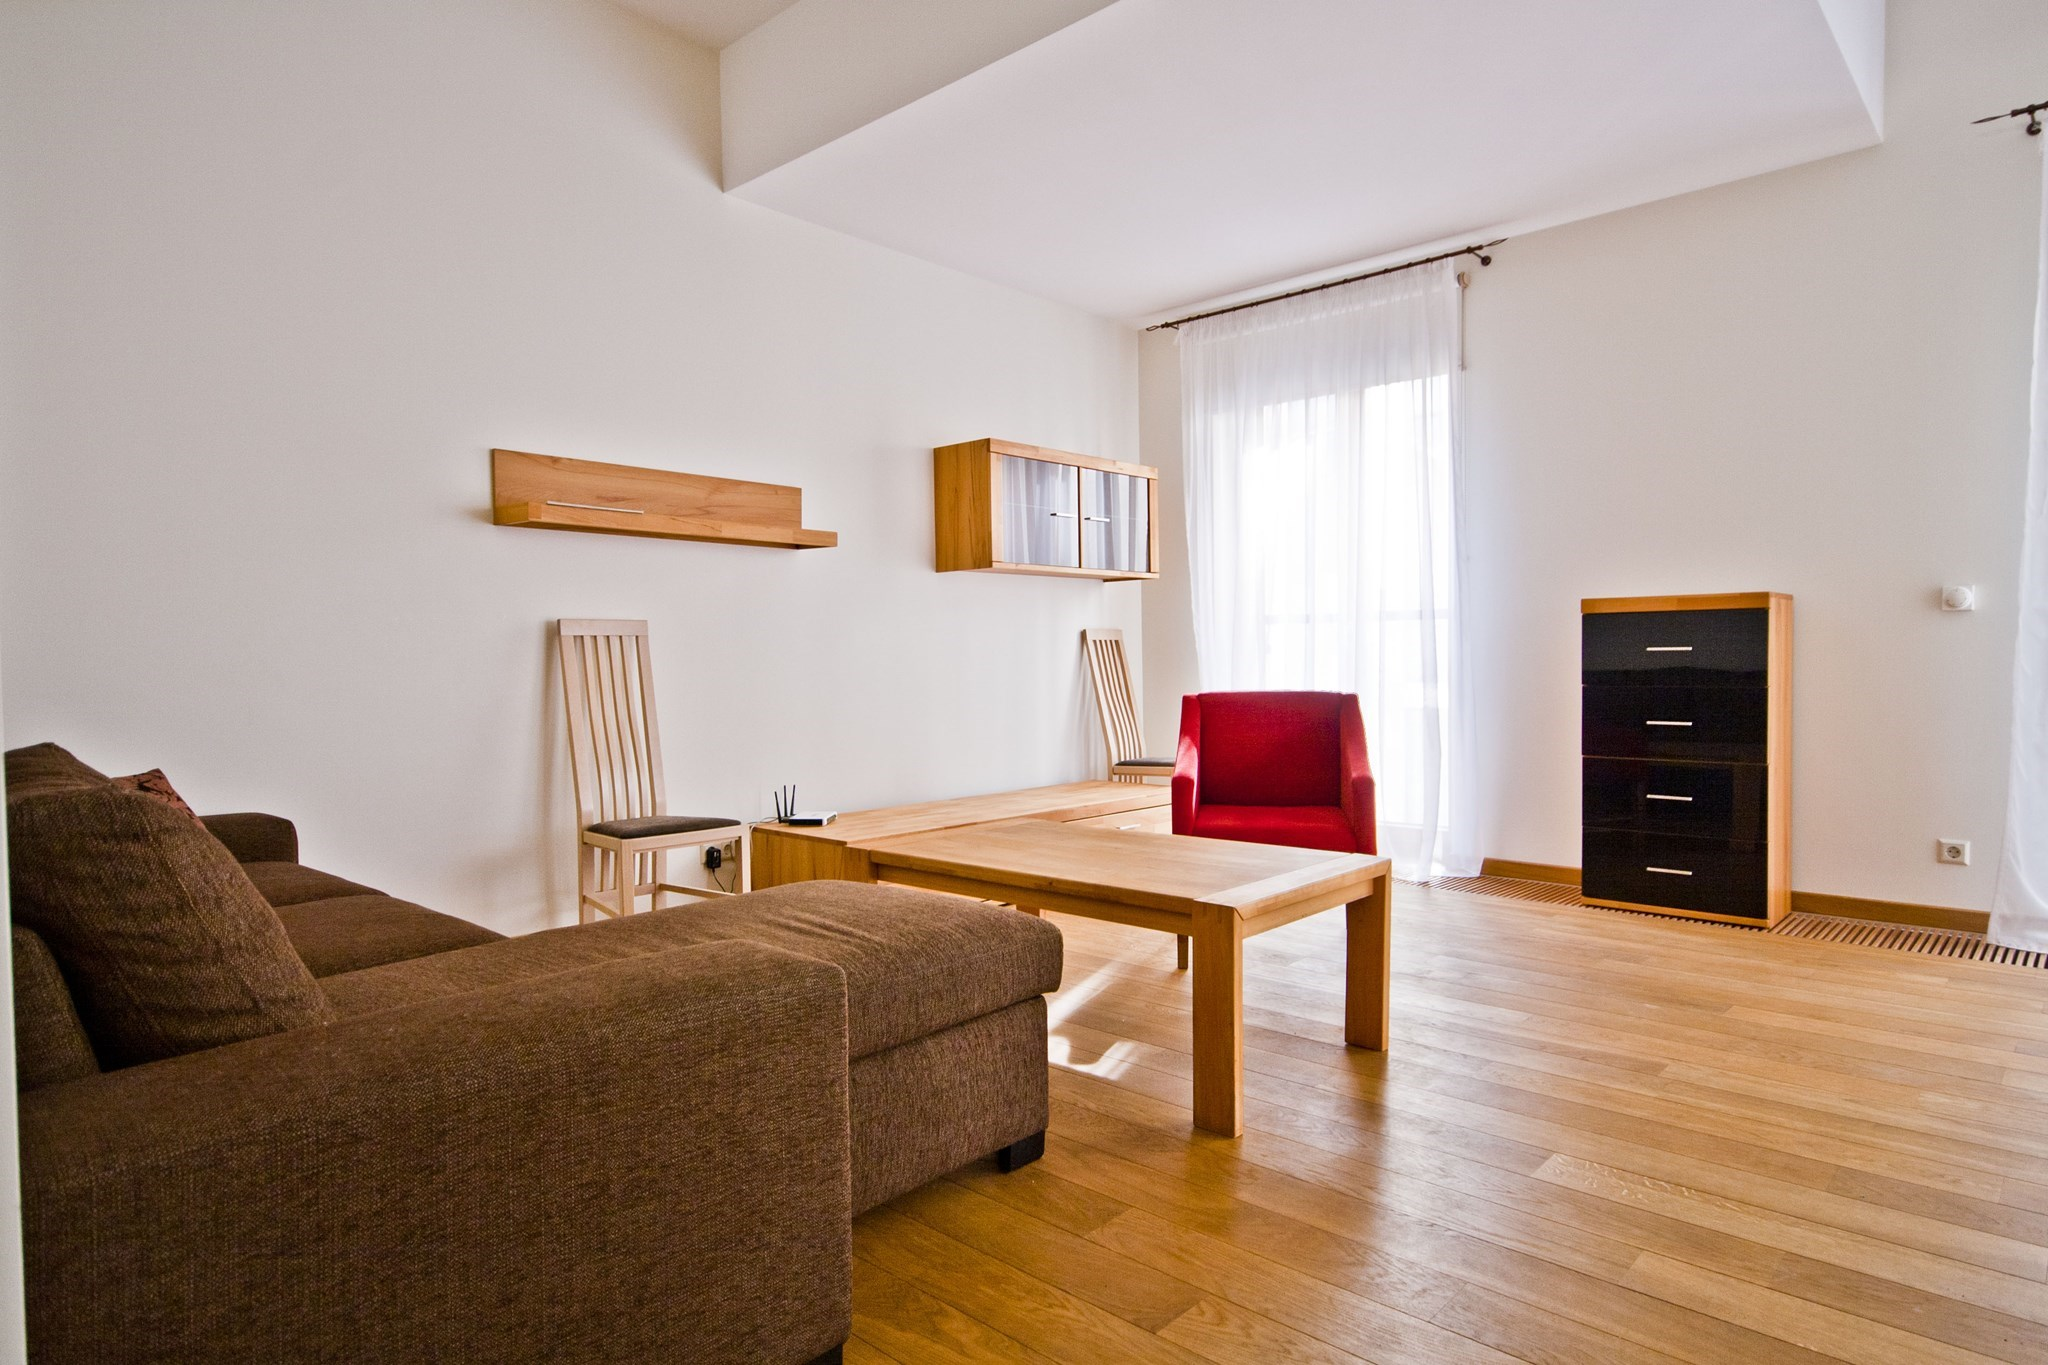 Well maintained apartments for comfortable living - For Rent Offered Three Rooms Apartment In New Project In Old City Of Riga Project Vagnera Residency Prestigious Well Maintained And Comfortable For